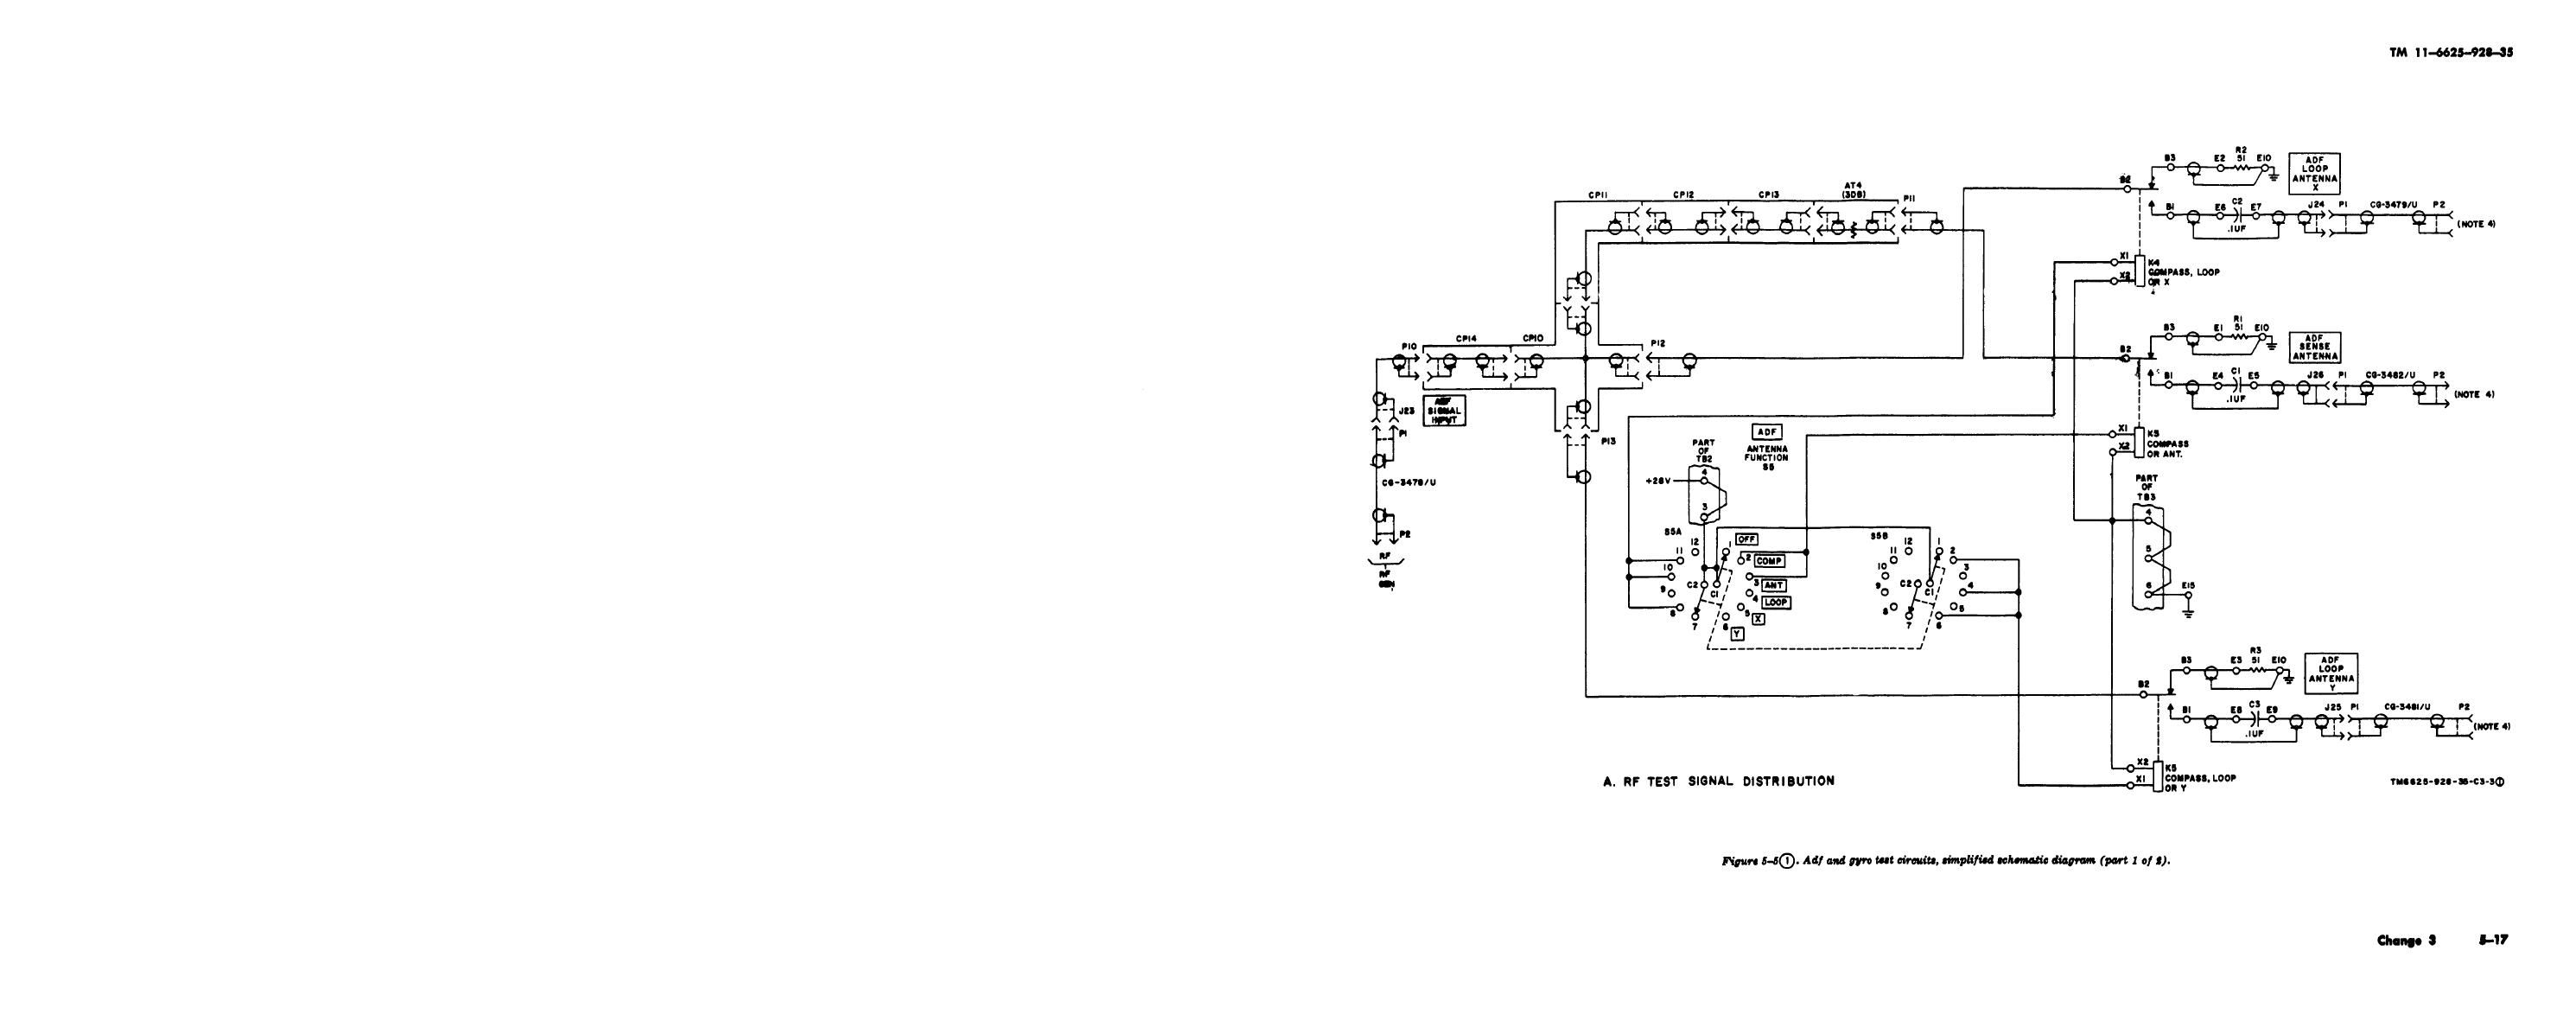 Figure 5 Adf And Gyro Test Circuits Simplified Schematic Diagram Circuit Tester Tm 11 6625 928 35 Facilities Kit Mk 994 Ar Manual Page Navigation 71 72 73 74 75 76 77 78 79 80 81